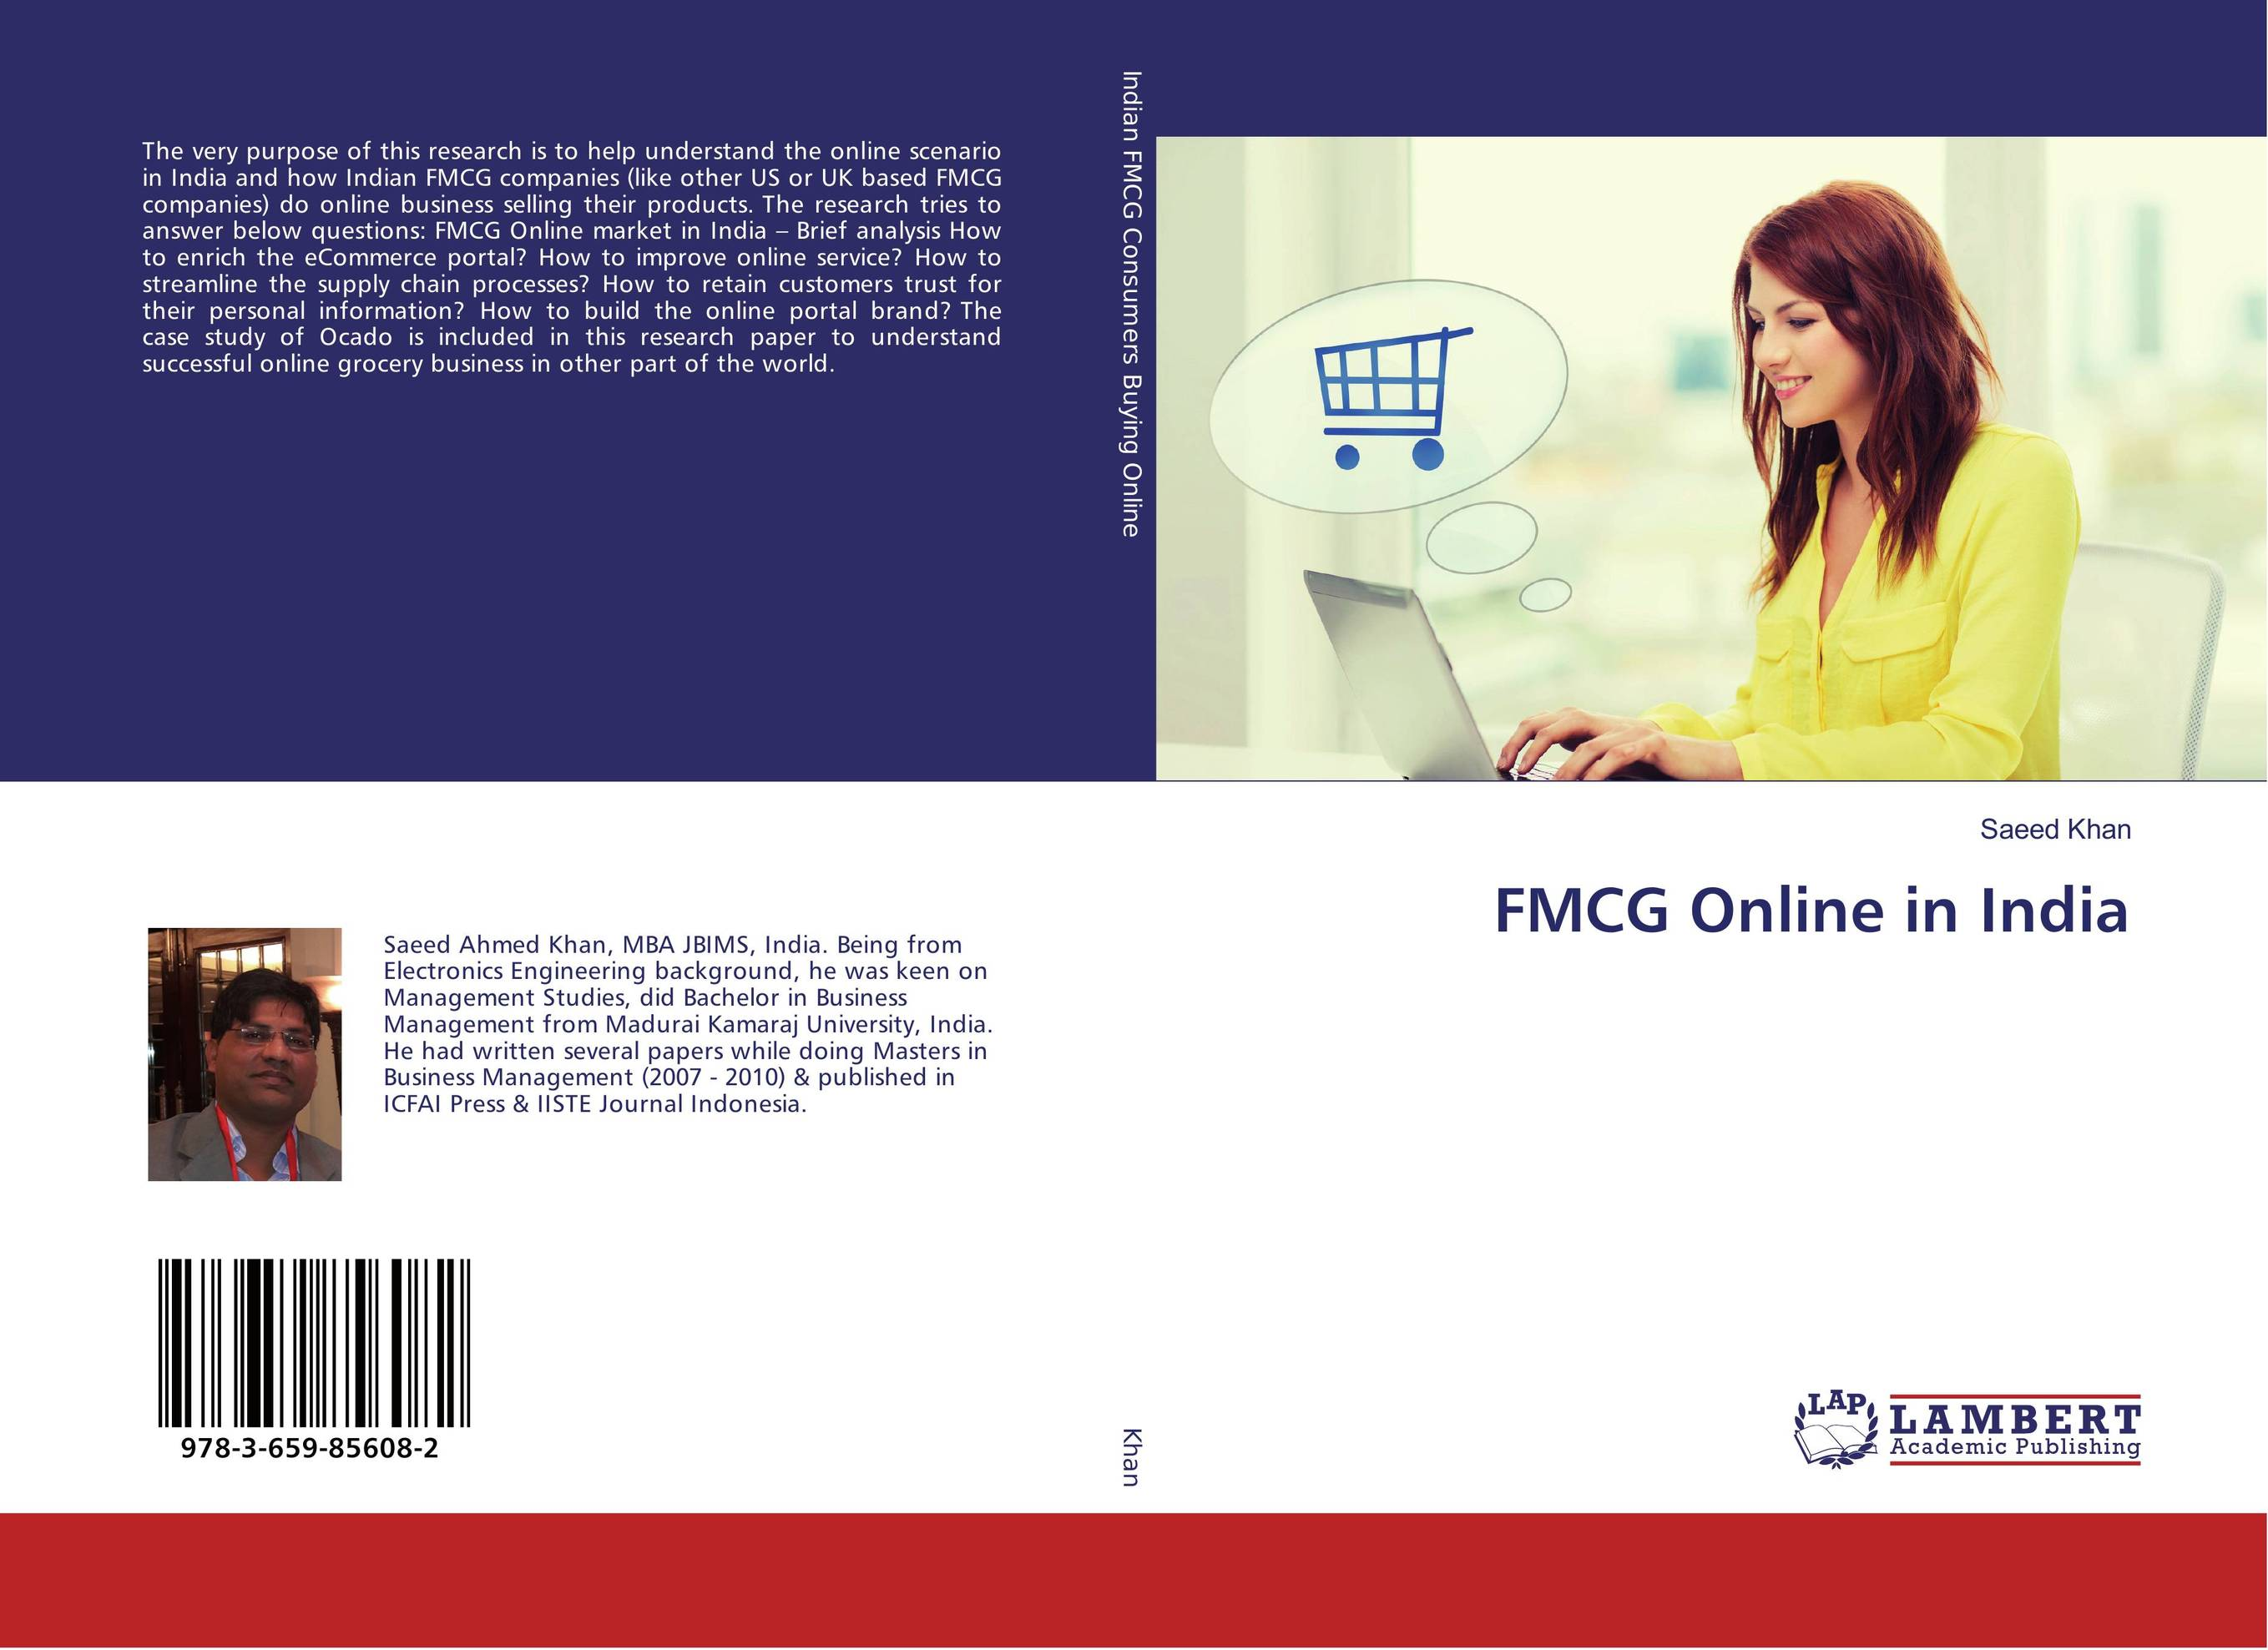 FMCG Online in India